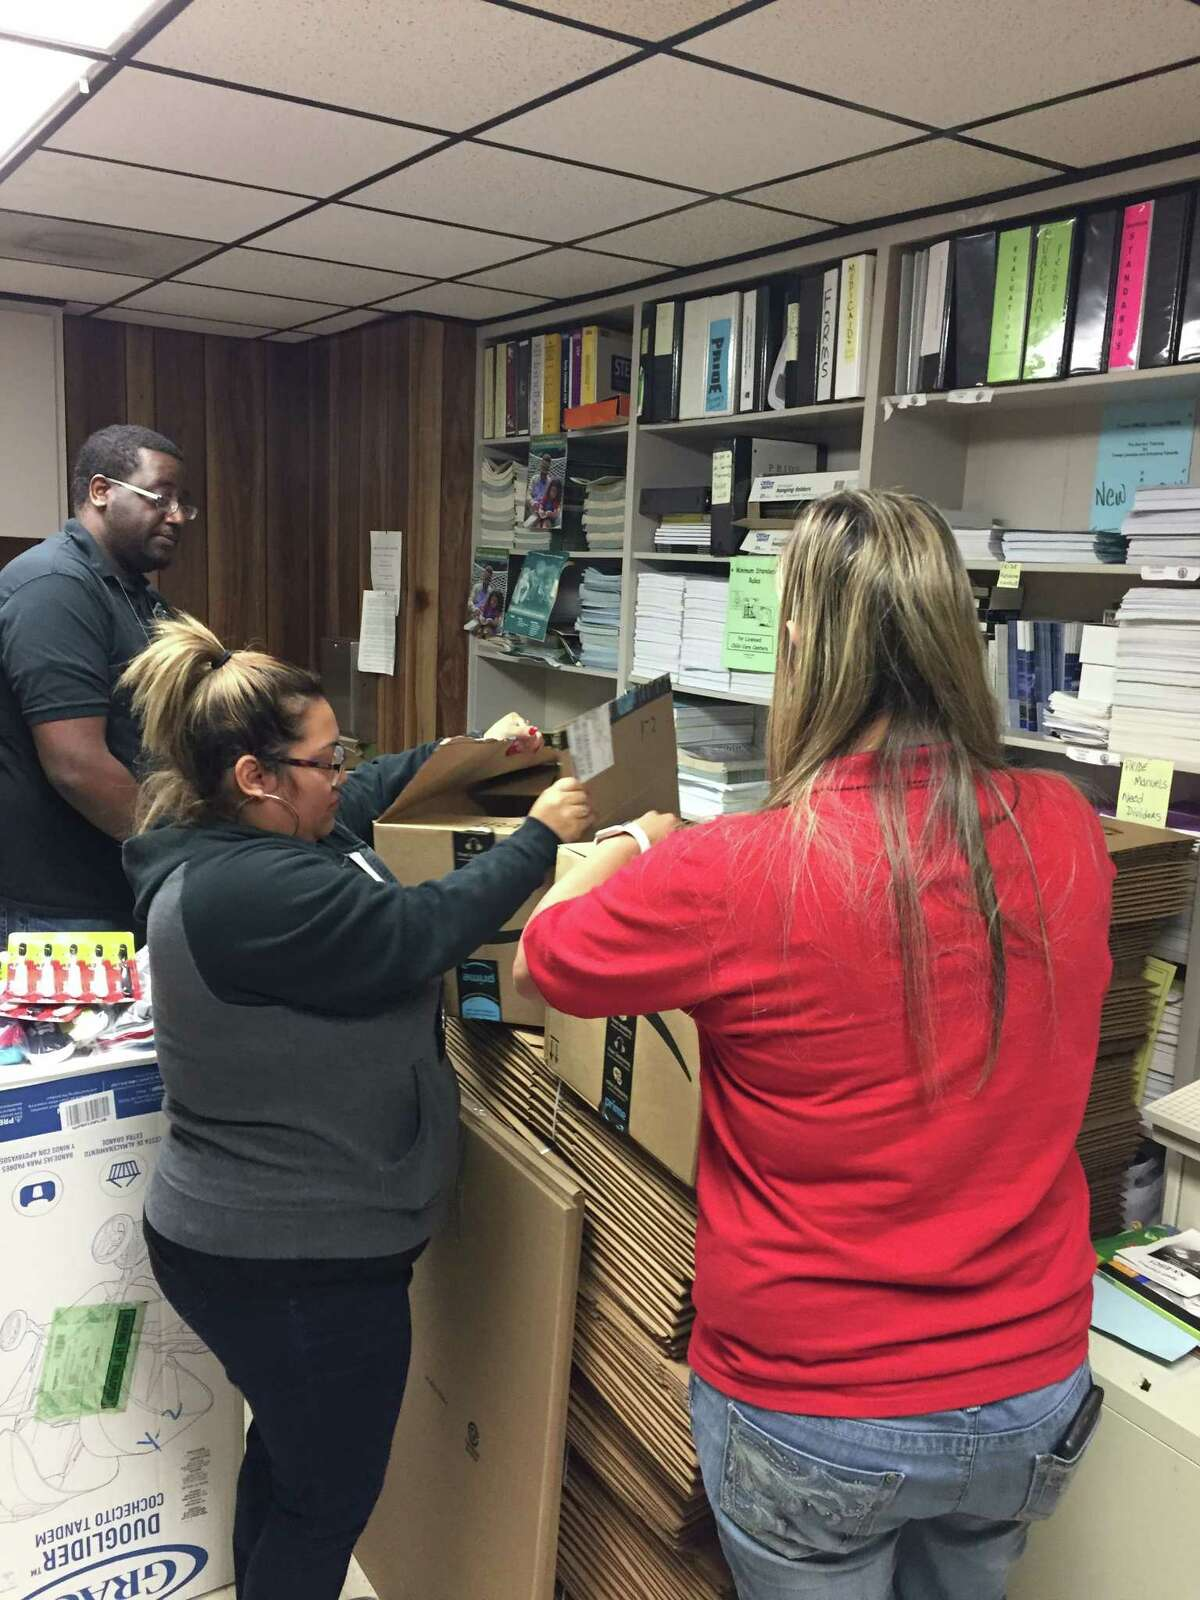 Program director Alfred Bryant works with administrative assistants Wendy Cartagena, center, and Tara Aquila tounpack boxes of gifts at the Rosenberg office of the Texas Department of Family Services.